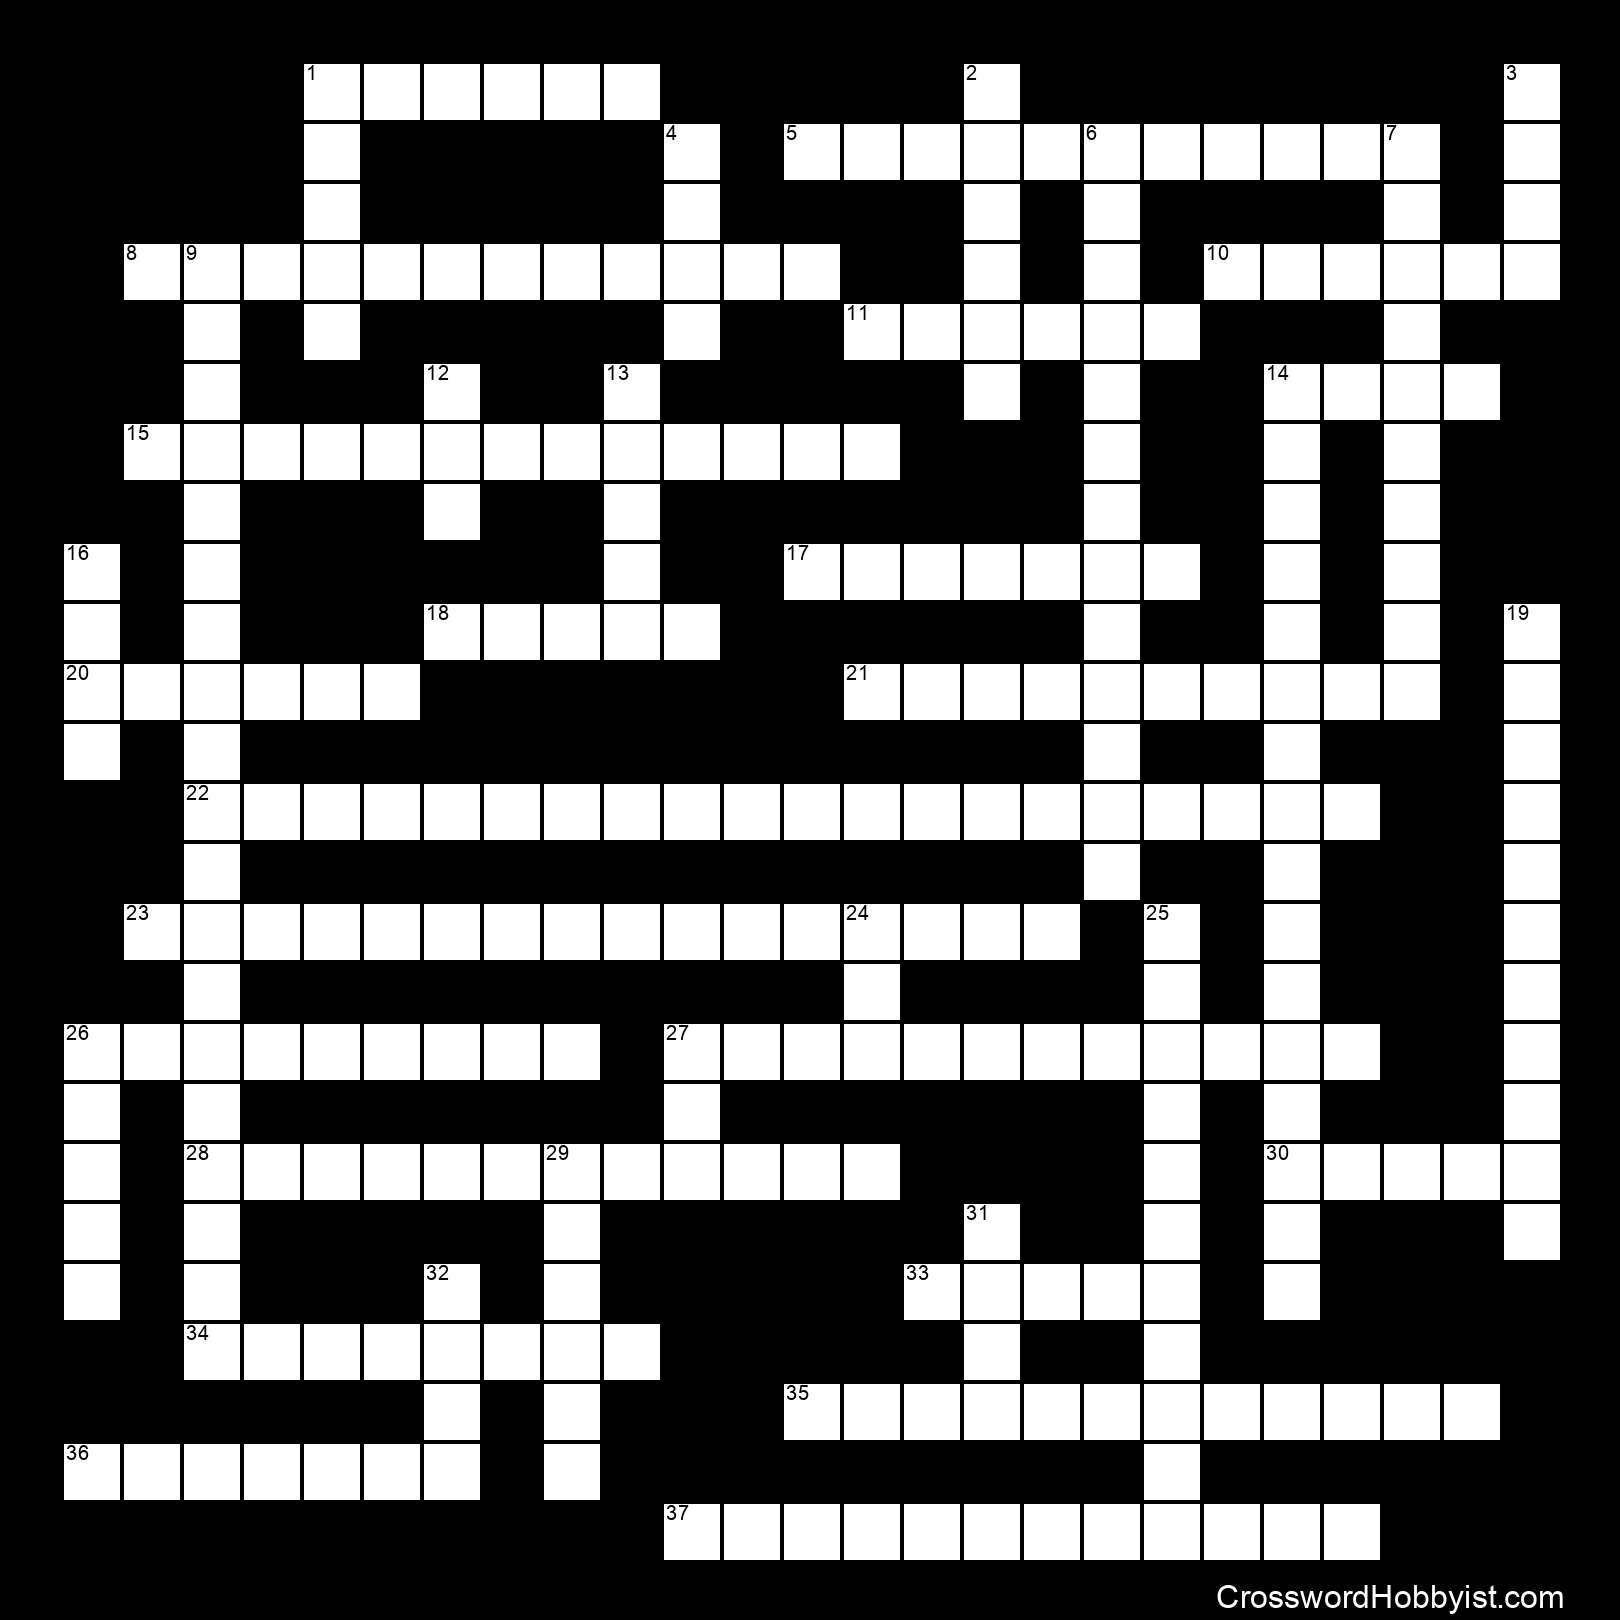 Recipe Crossword Puzzle - Universal Daily Crossword Puzzle Printable